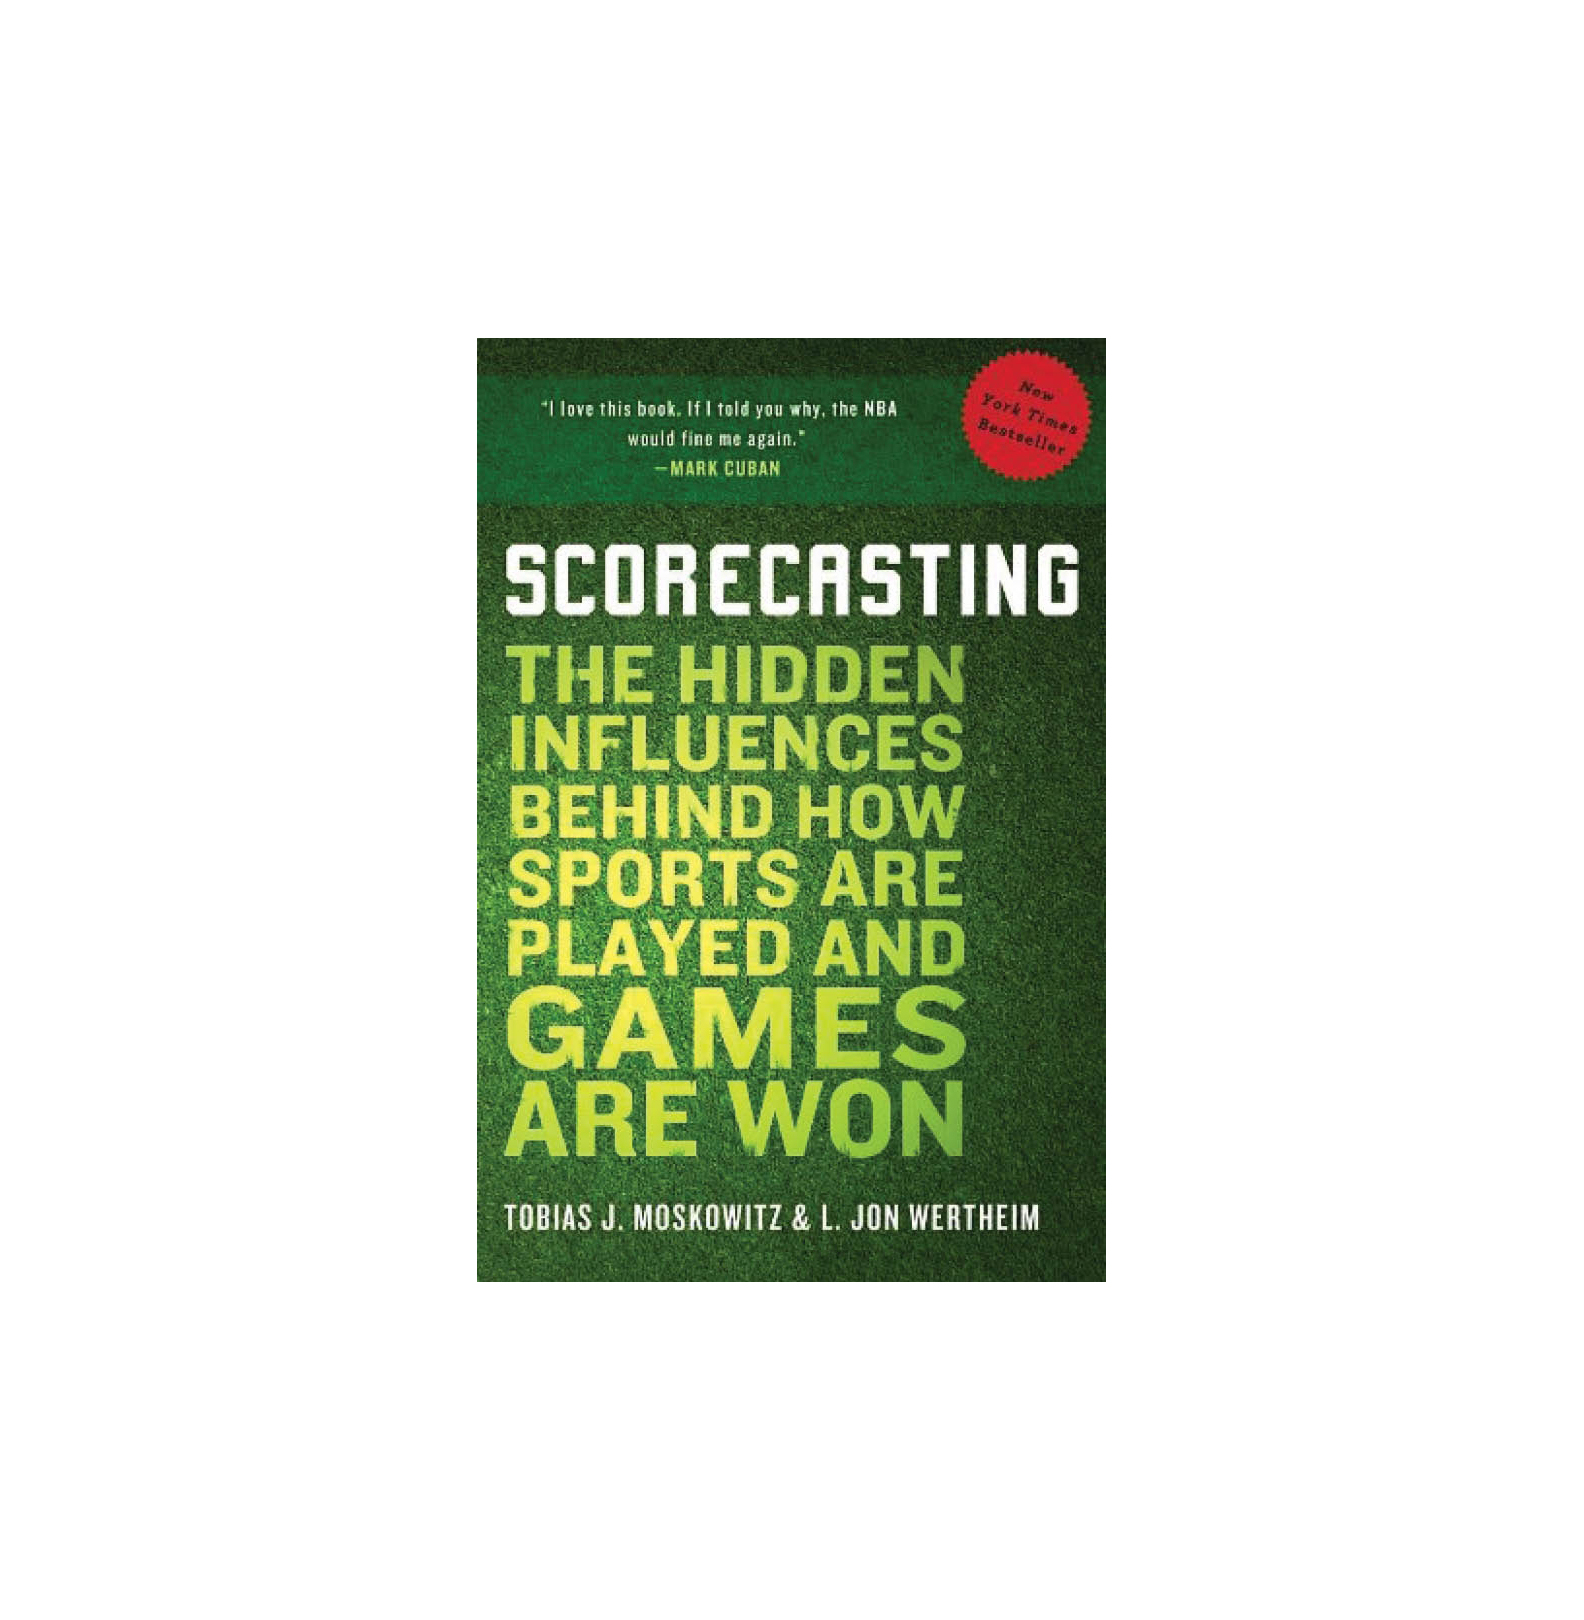 Scorecasting: The Hidden Influences Behind How Sports Are Played and Game Are Won, by Tobias Moskowitz & L. Jon Wertheim